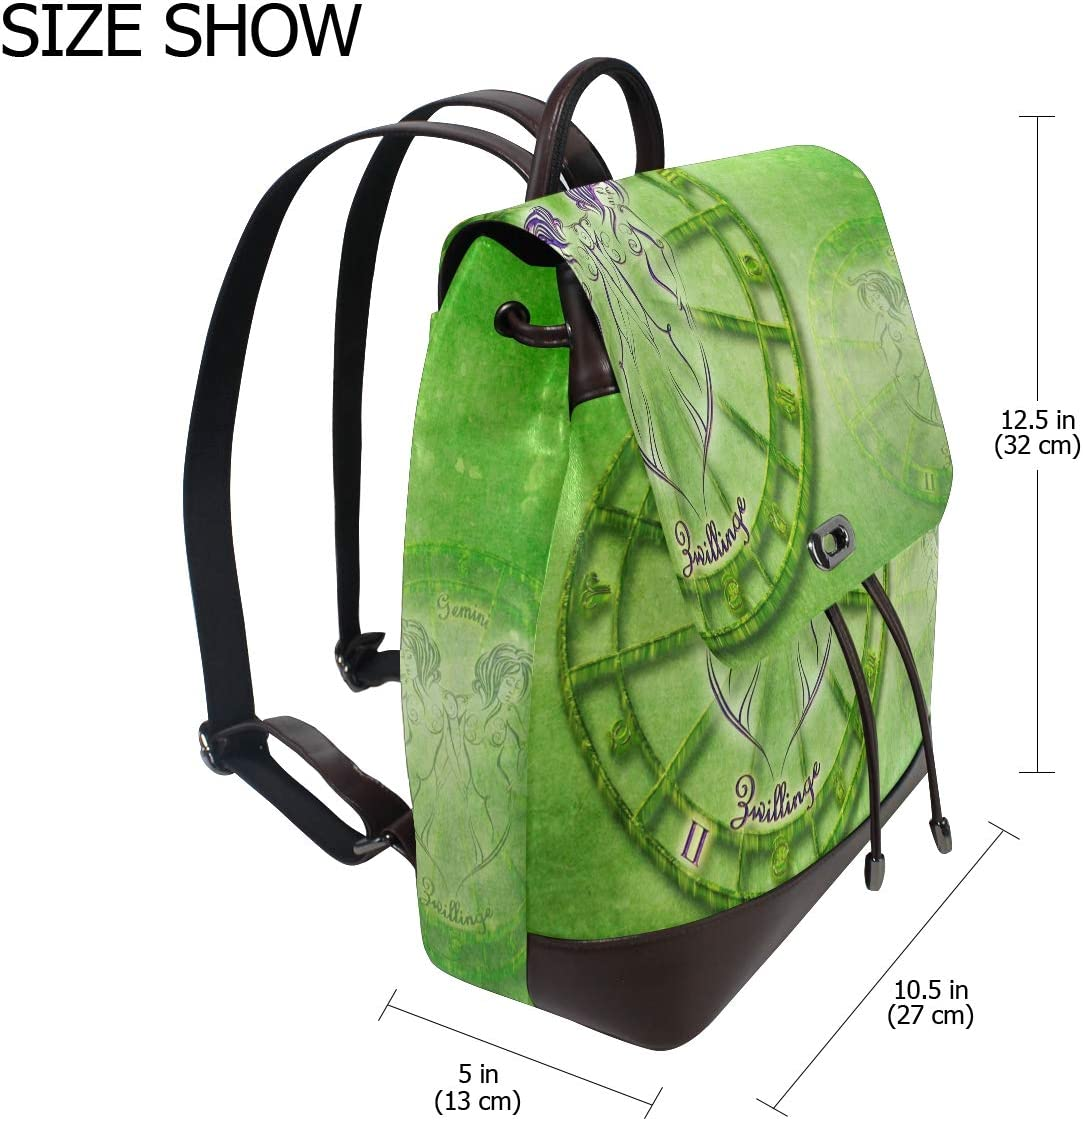 Storage Bag For Men Women Girls Boys Personalized Pattern Twins Travel Bag Backpack Shopping Bag School Bag